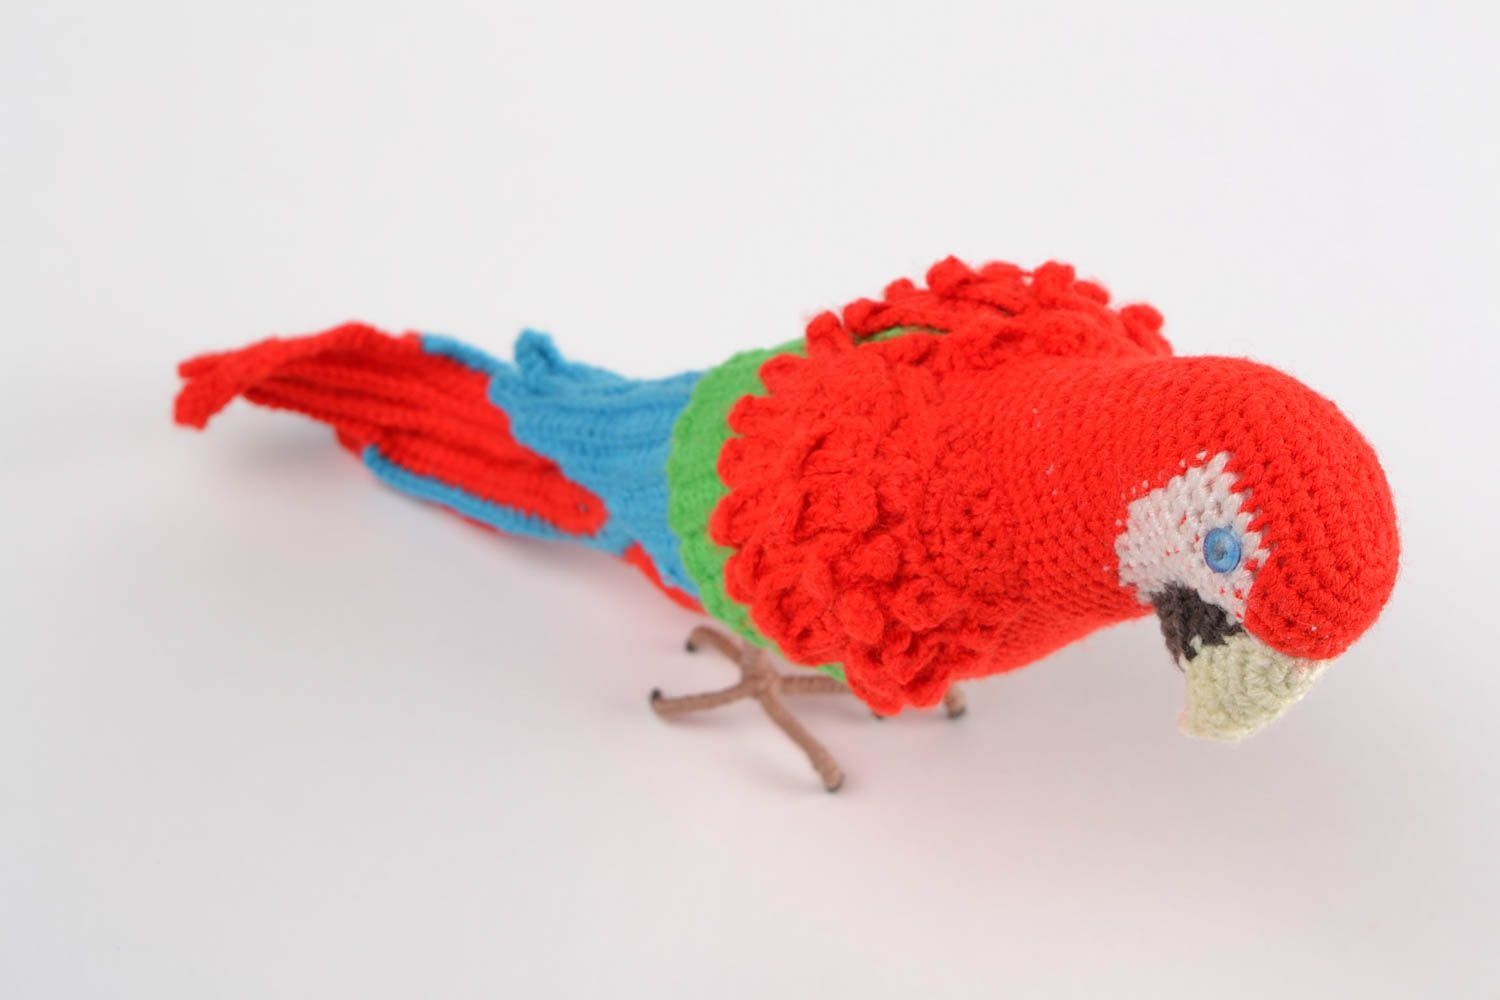 knitted toys Handmade designer soft toy crocheted of colorful acrylic threads red parrot - MADEheart.com